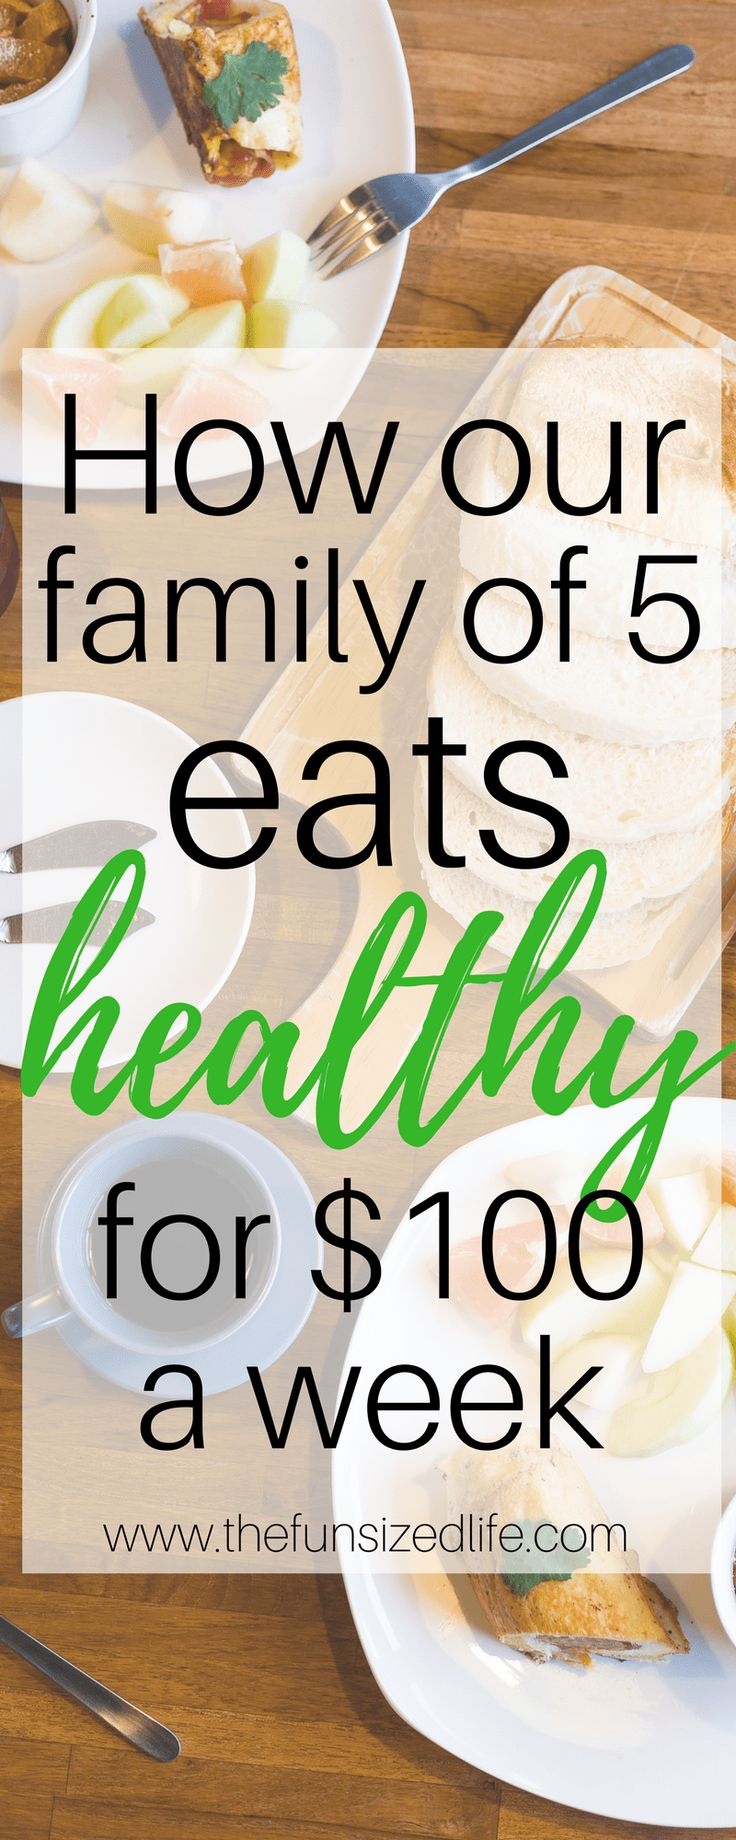 family of 5 eats healthy for $100 a week, eating on a budget, feeding a family on a budget, healthy eating for less, how to eat healthy on a budget, spend less grocery shopping, grocery shopping on a budget, feed a family healthy #healthyeatingonabudgetchallenges